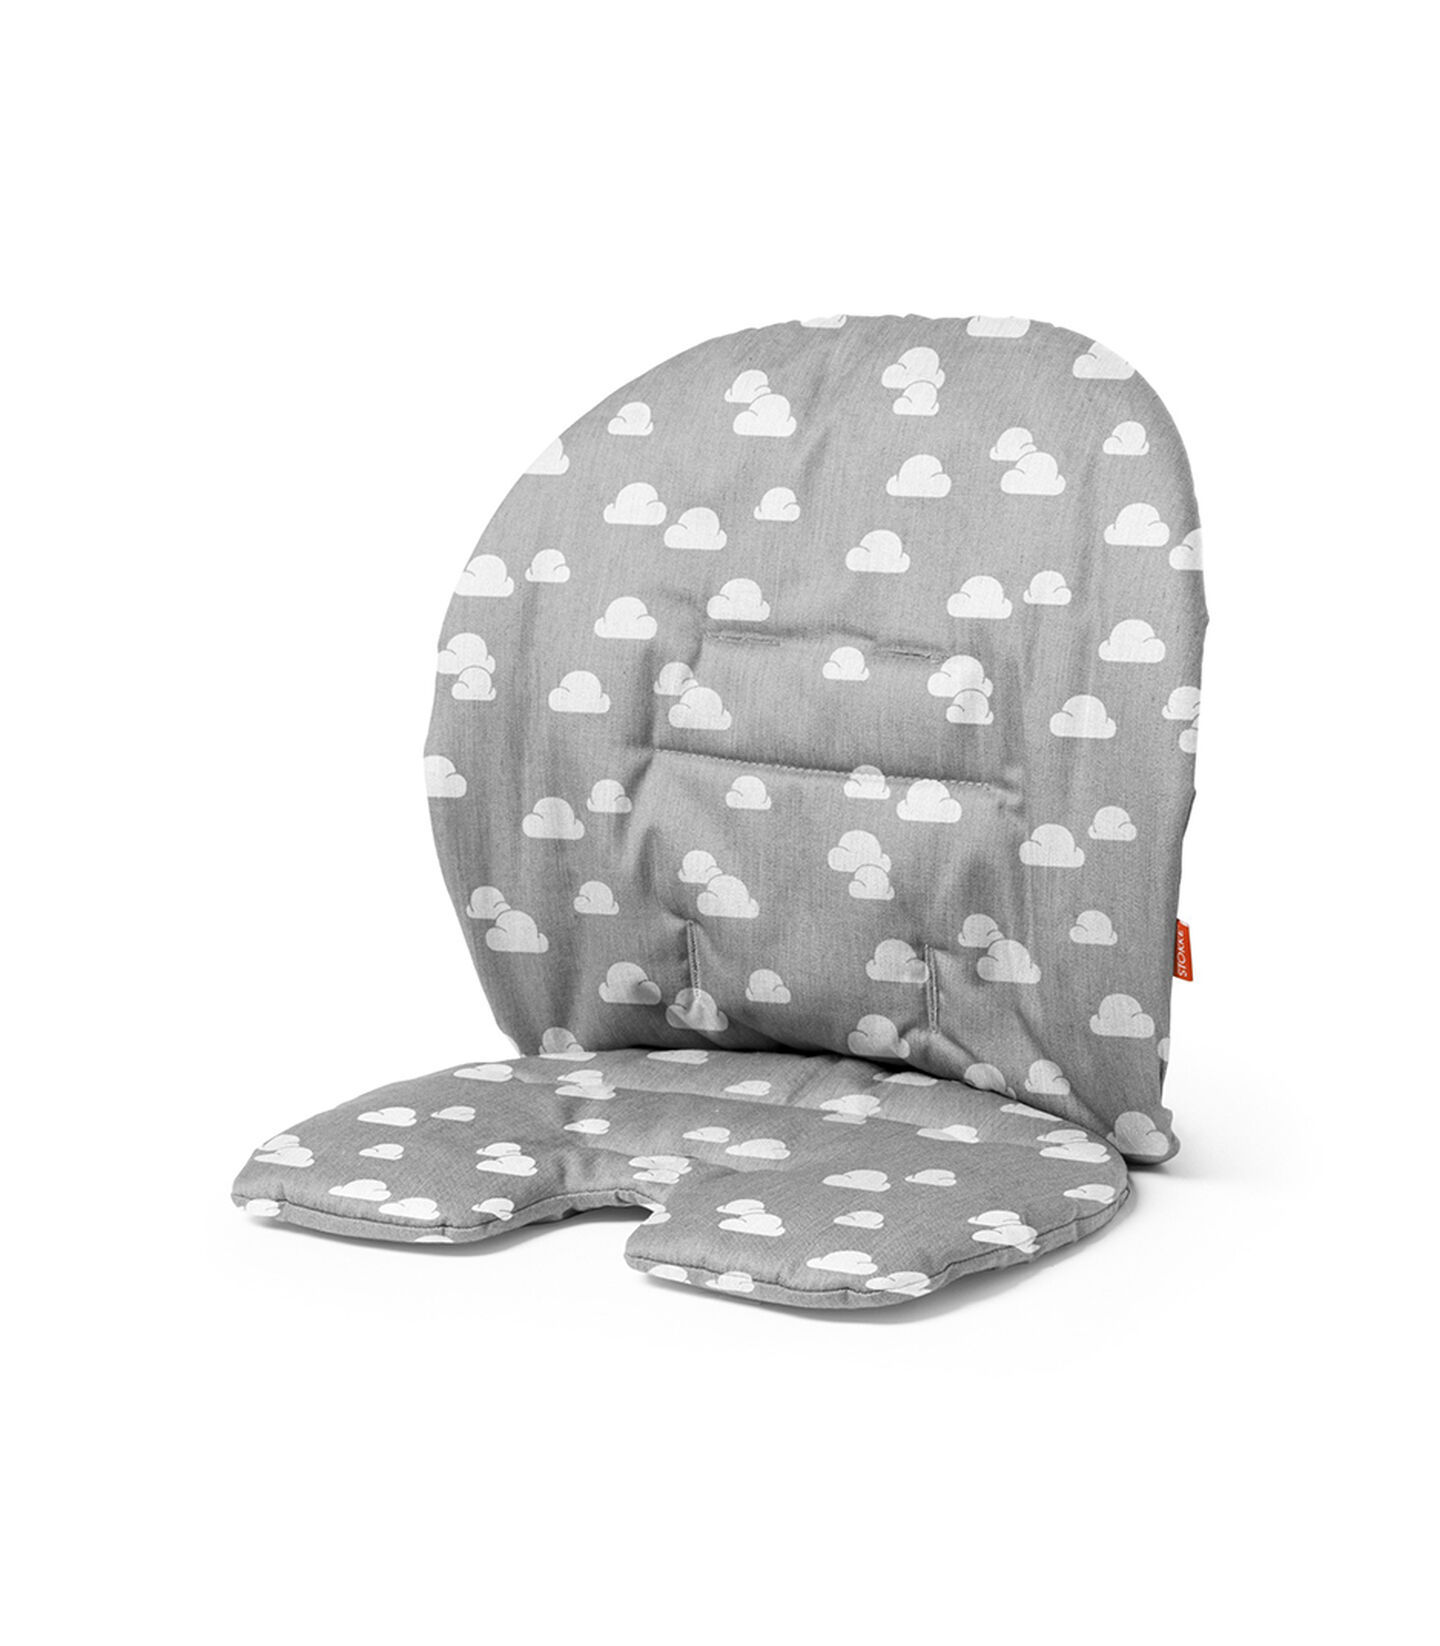 @Home; Accessories; Cushion; Grey Clouds; Photo; Plain; Stokke Steps view 2